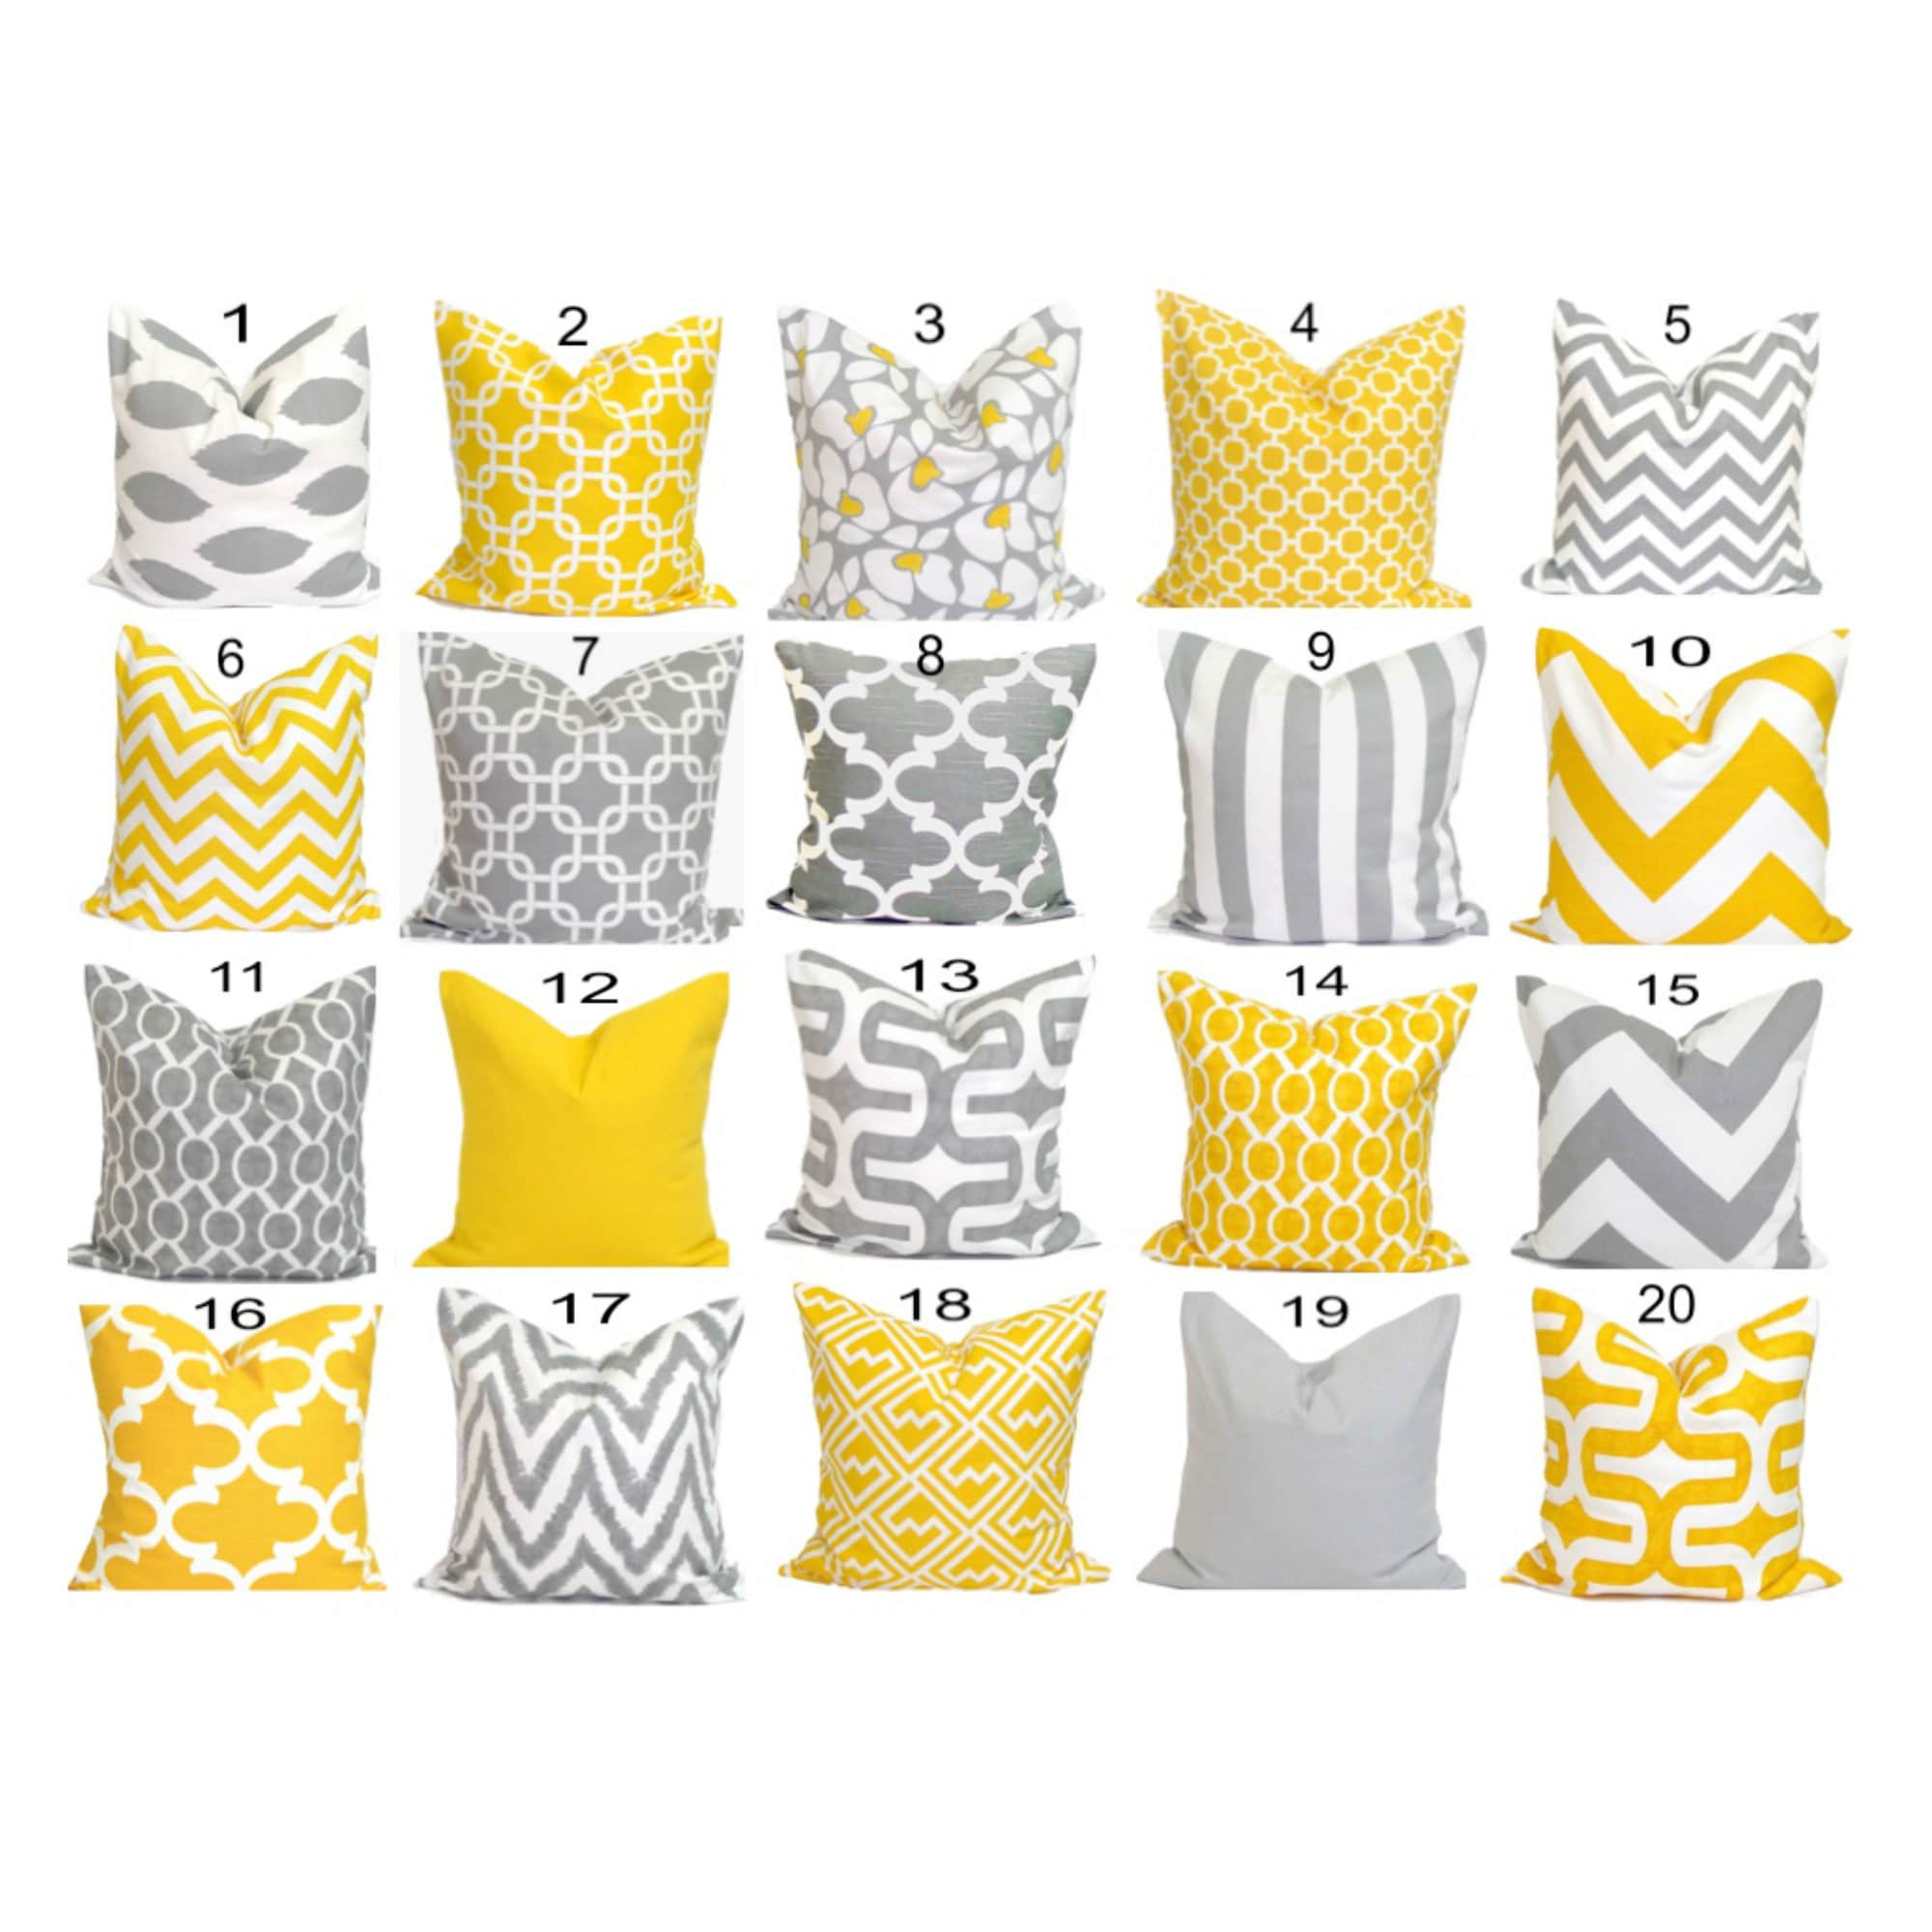 SALE Gray Yellow Pillows 14x14 inch Decorative Pillow